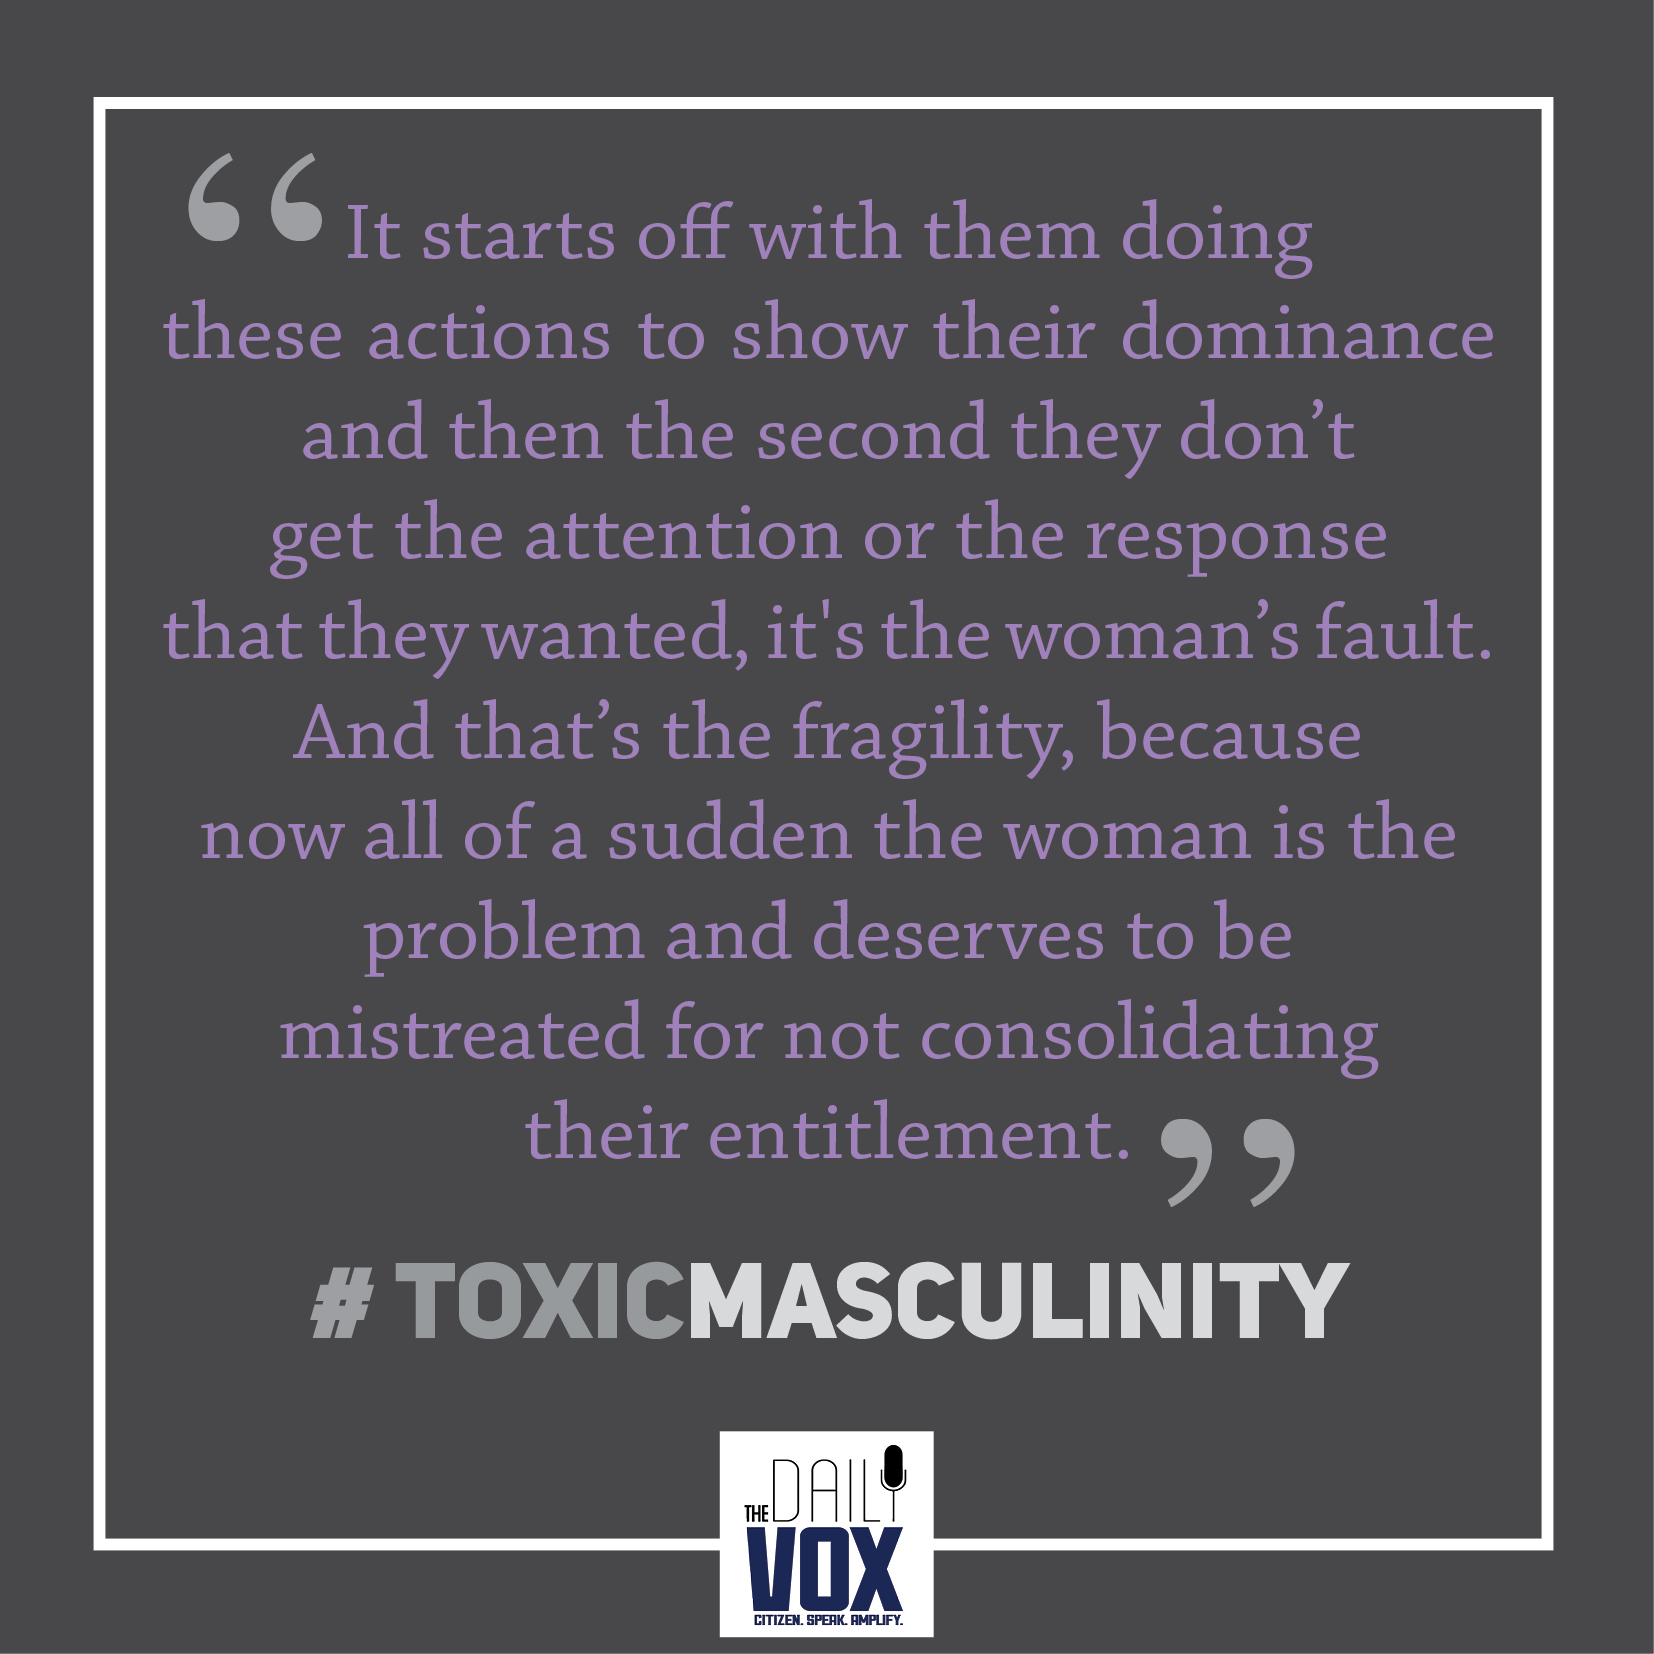 toxic-masculinity-smc-for-story-corrected